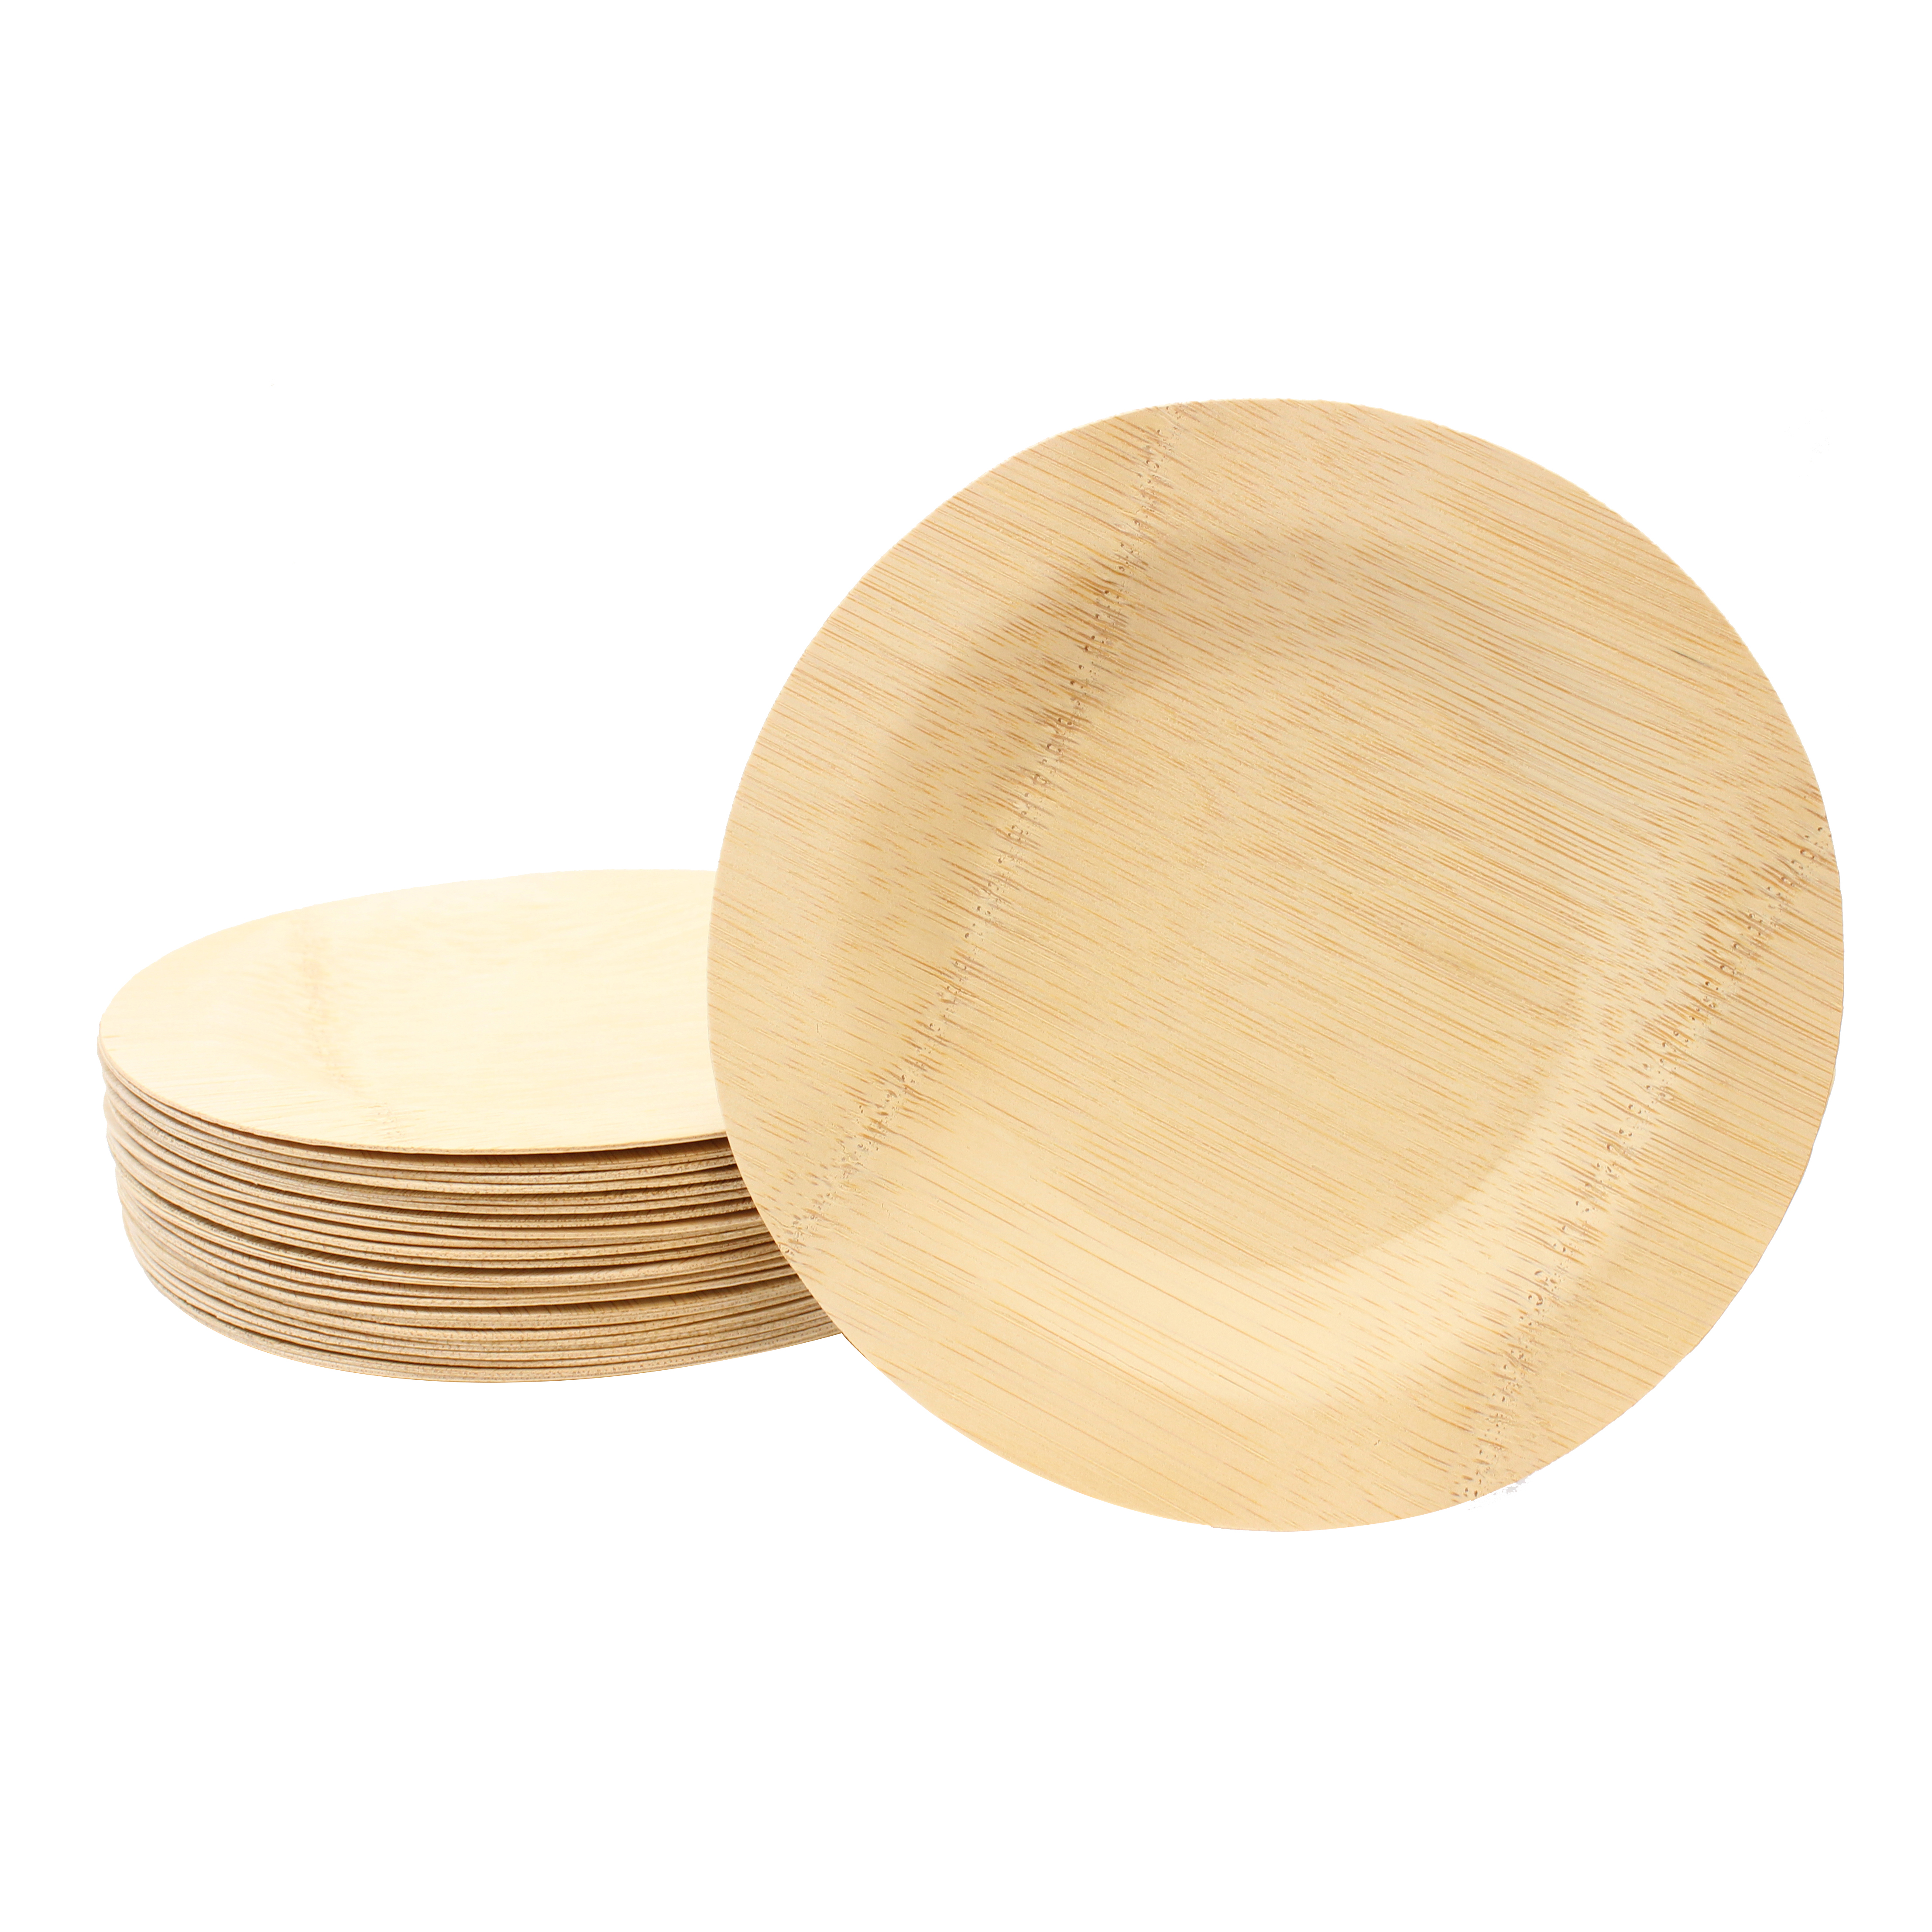 TableCraft Products BAMDRP7 disposable plates